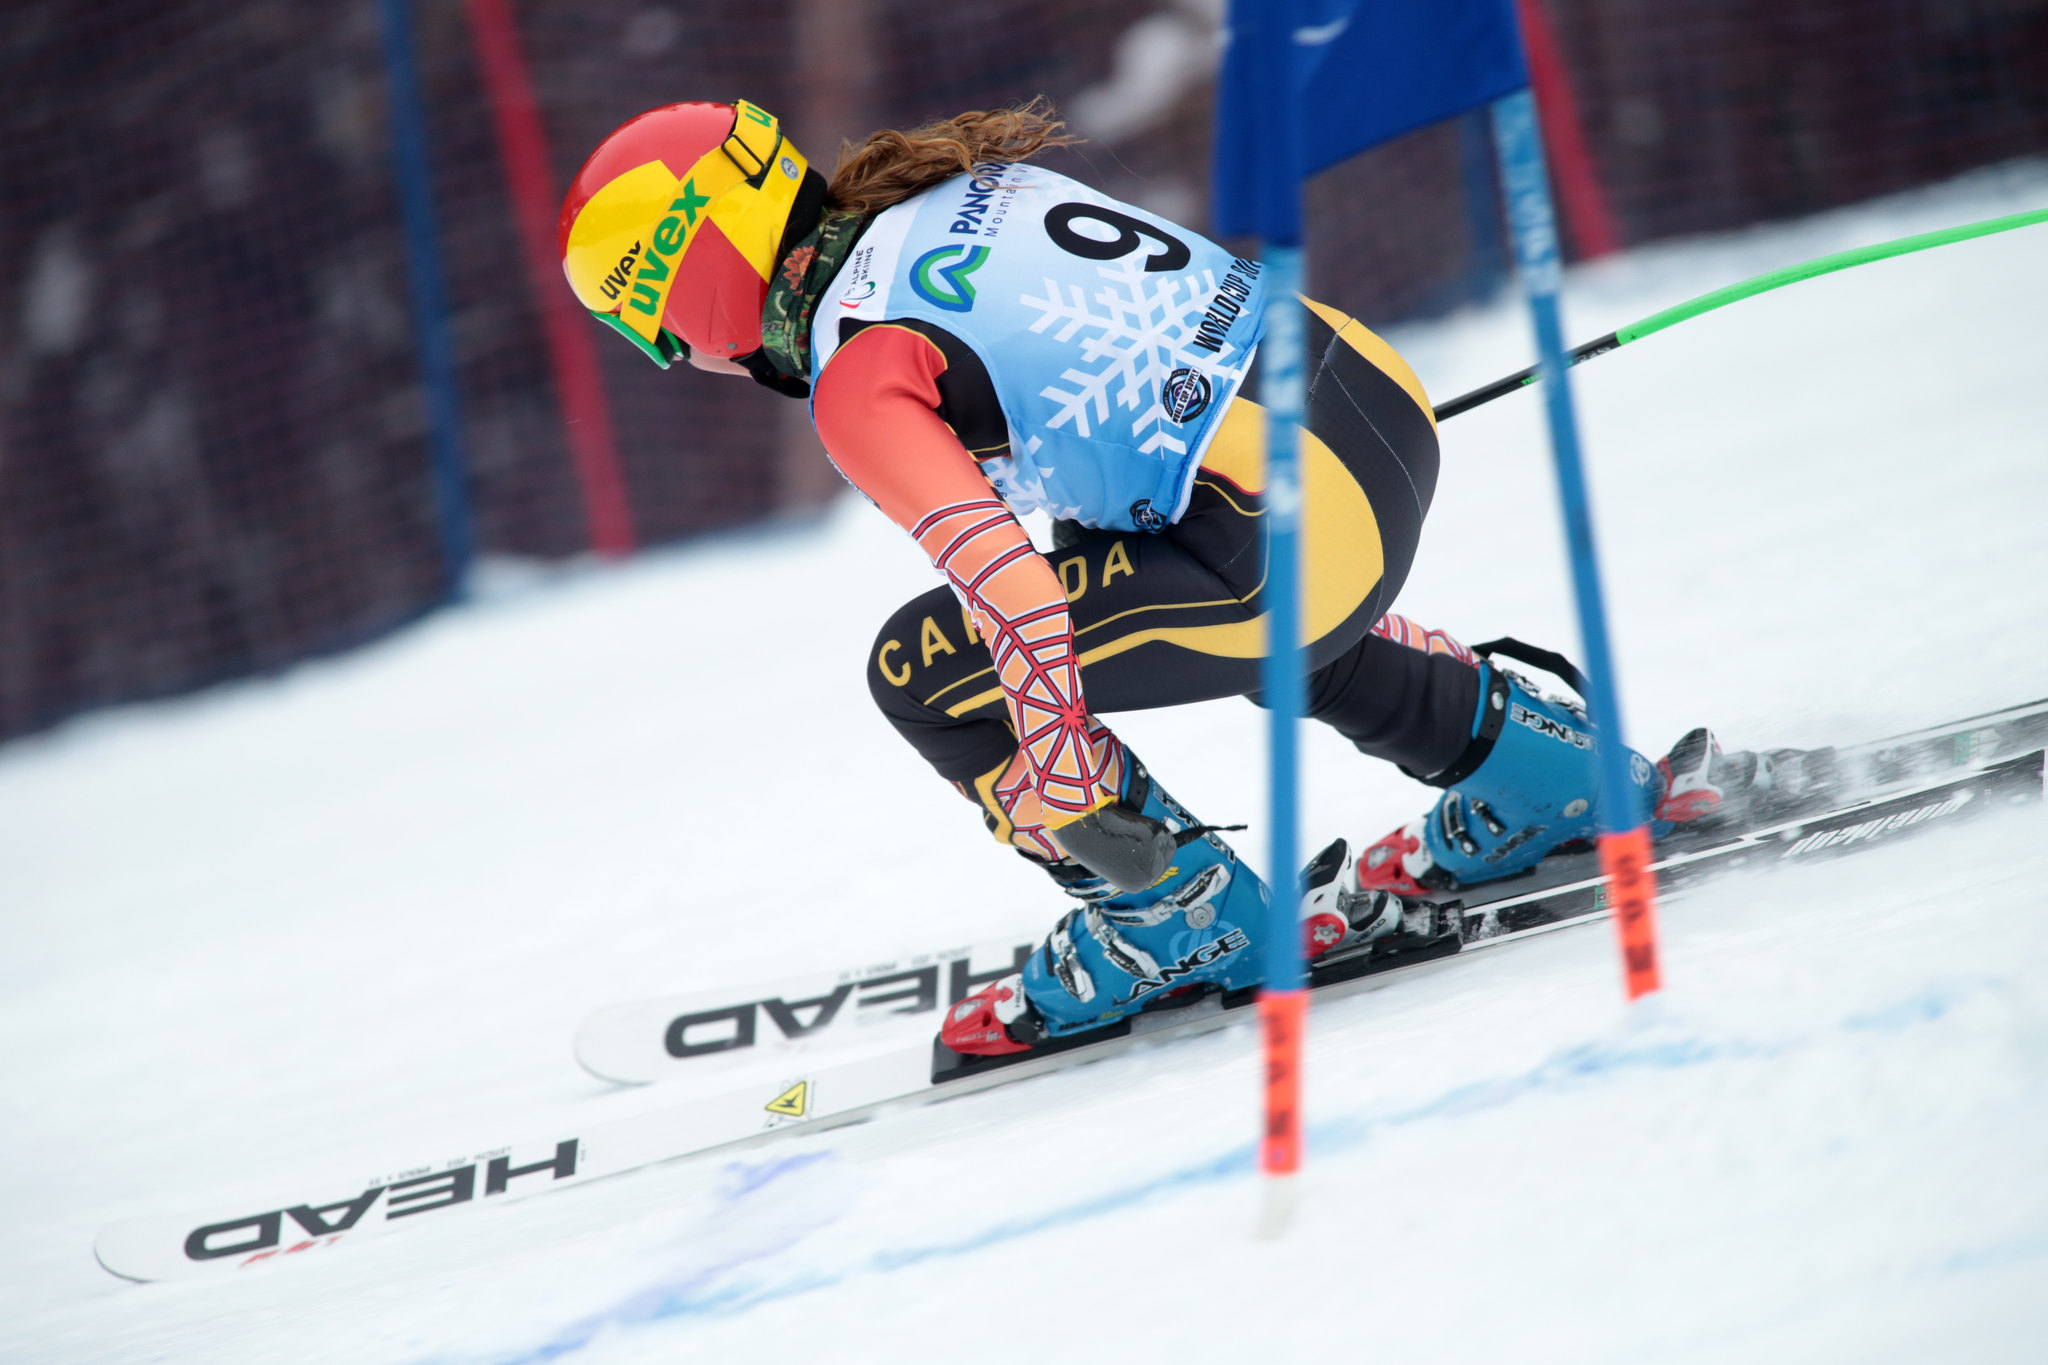 Starker in action during the Super-G at the IPC World Cup in Panorama, CAN